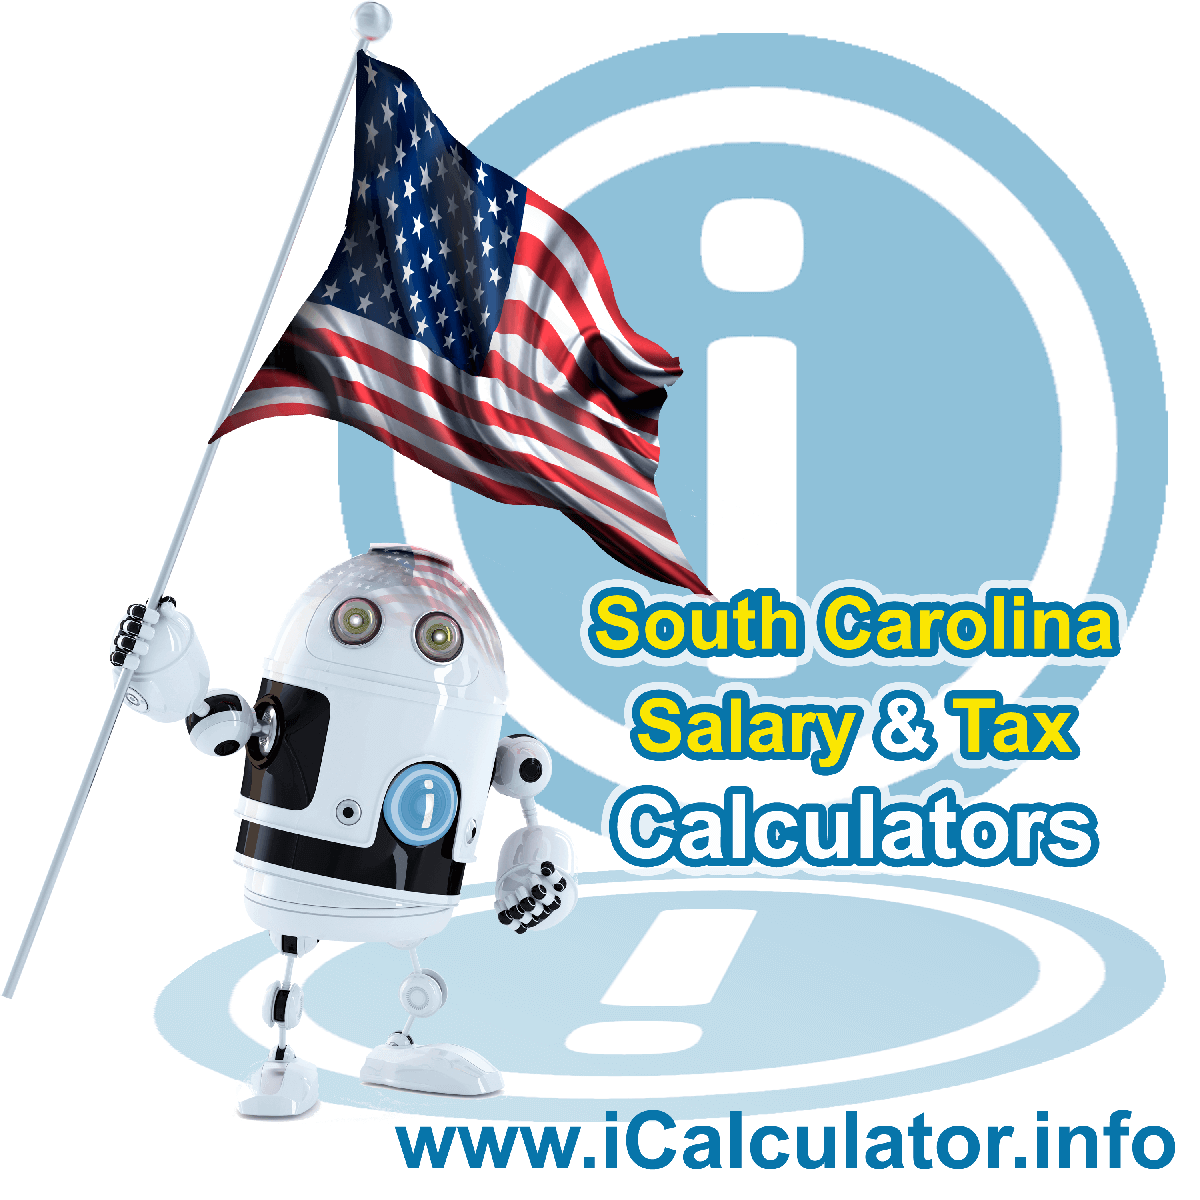 South Carolina Salary Calculator 2021 | iCalculator™ | The South Carolina Salary Calculator allows you to quickly calculate your salary after tax including South Carolina State Tax, Federal State Tax, Medicare Deductions, Social Security, Capital Gains and other income tax and salary deductions complete with supporting South Carolina state tax tables